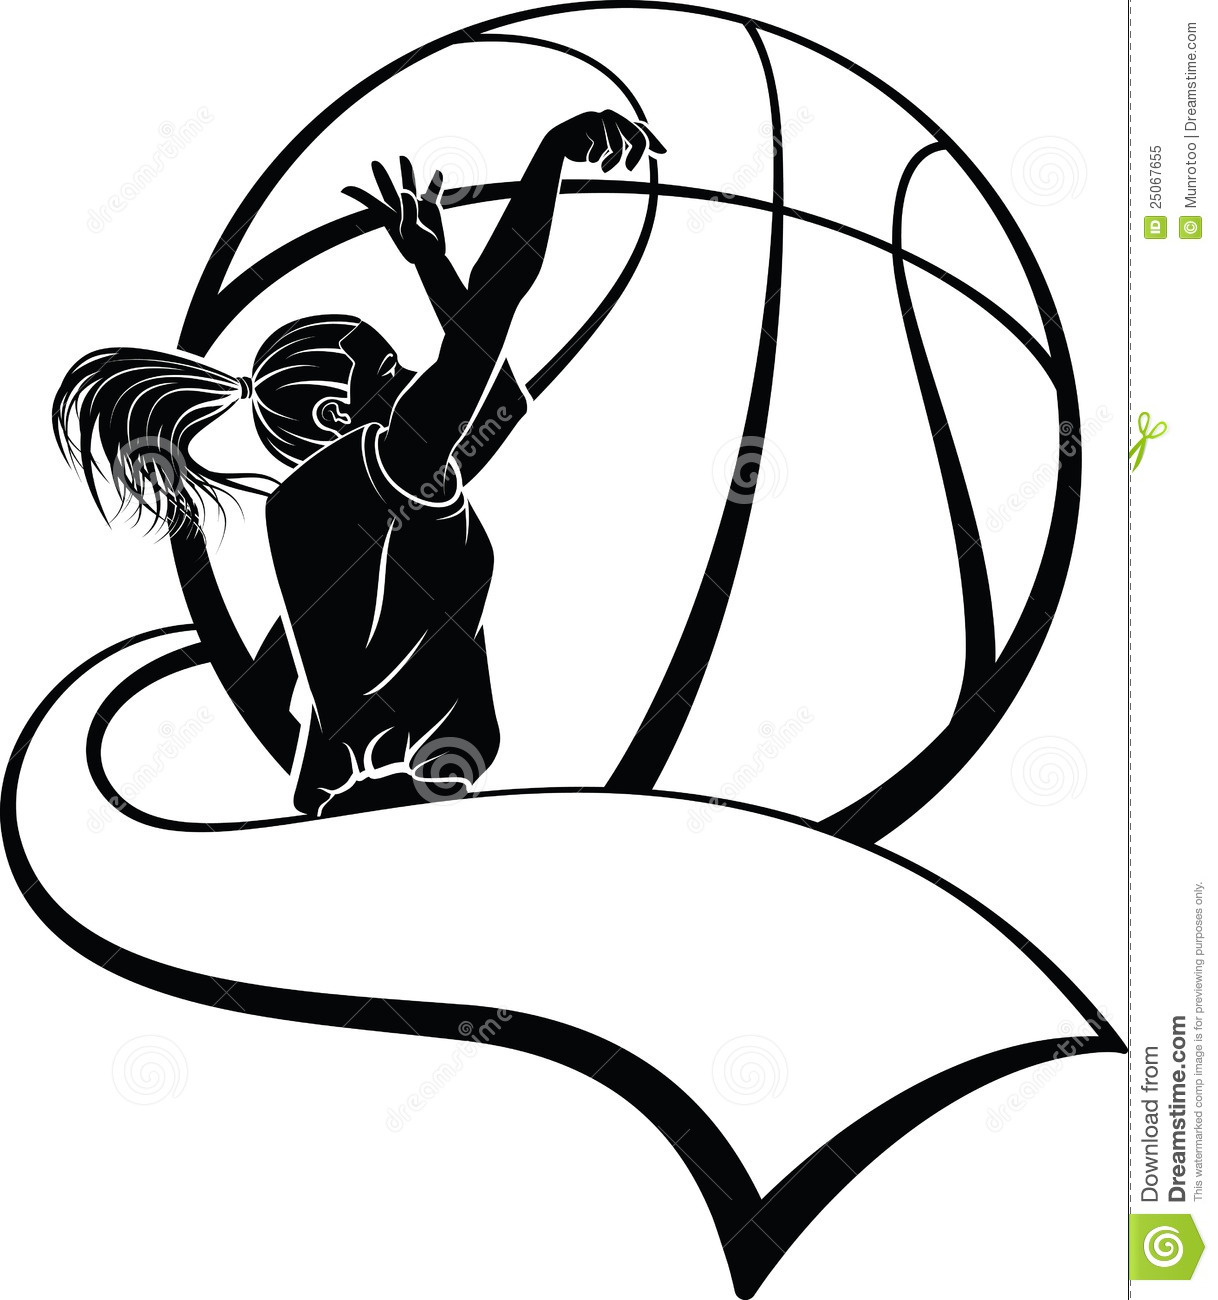 Basketball graphics clipart clipart black and white download Clipart basketball - ClipartFest clipart black and white download